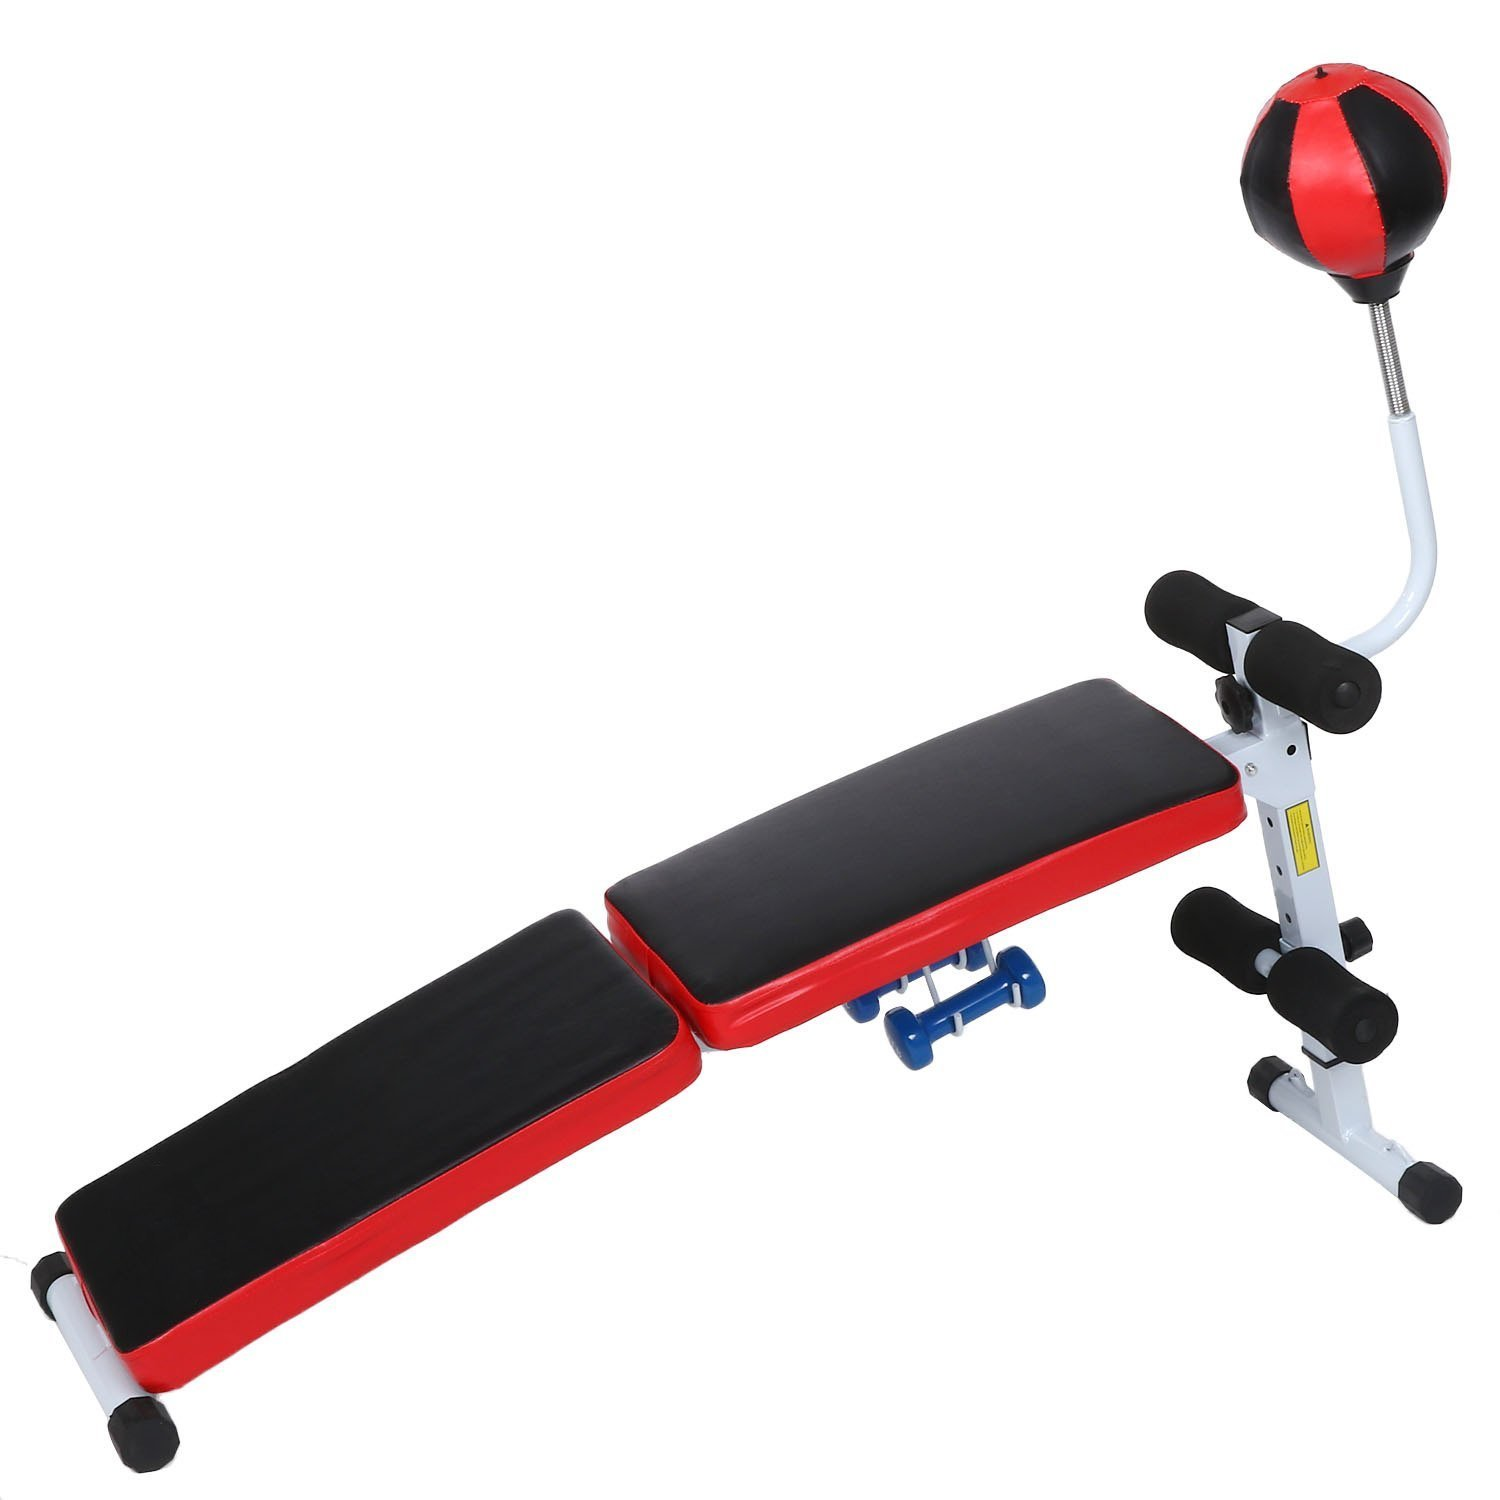 2018 Adjustable Weight Bench Workout Bench Lifting Gym Home Fitness Bench Workout Bench with Speed Ball Dumbbell